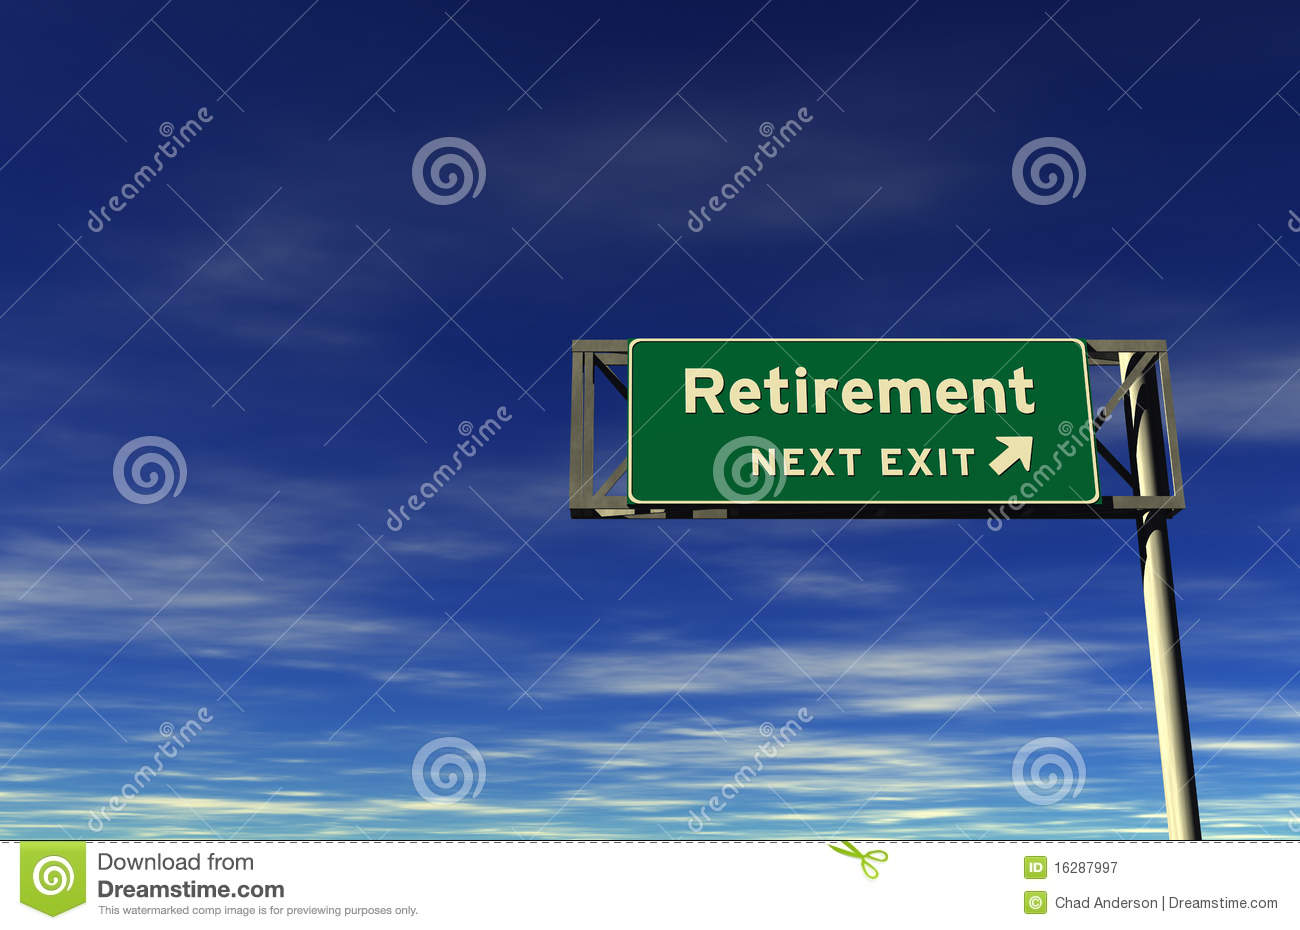 Retirement - Freeway Exit Sign